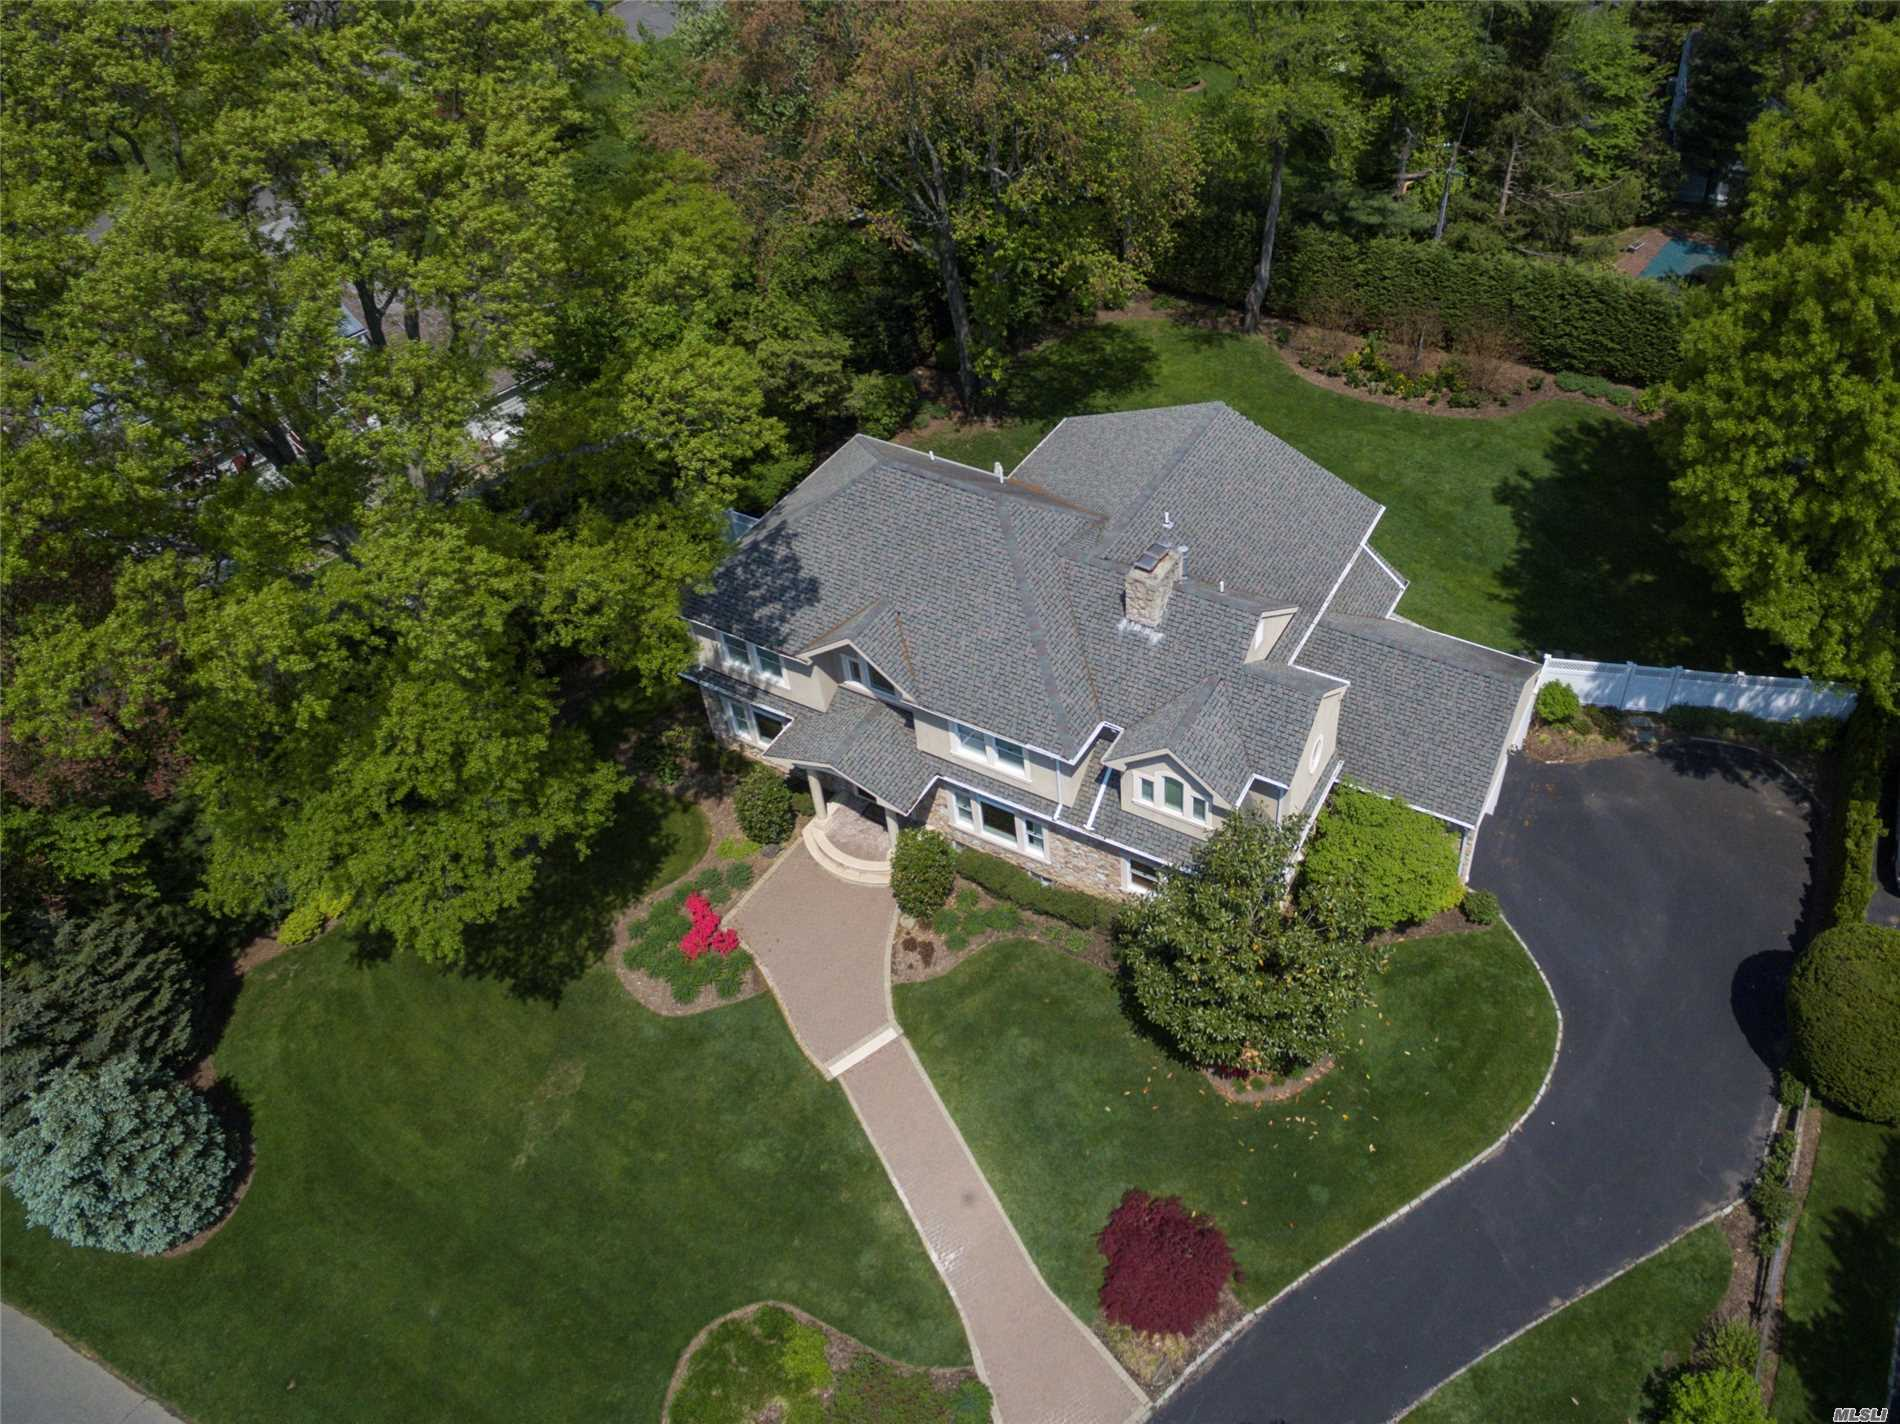 This Flower Hill Colonial Has It All! Totally Rebuilt & Renovated In 2003. Magnificent Property Large Enough For In-Ground Pool. Designer Kitchen With High End Appliances And Large Eating Area. Banquet Sized Dining Room. Family Room With Fireplace. Enormous Master Bedroom Suite, Surround Sound Through Out And So Much More! Generac Generator.